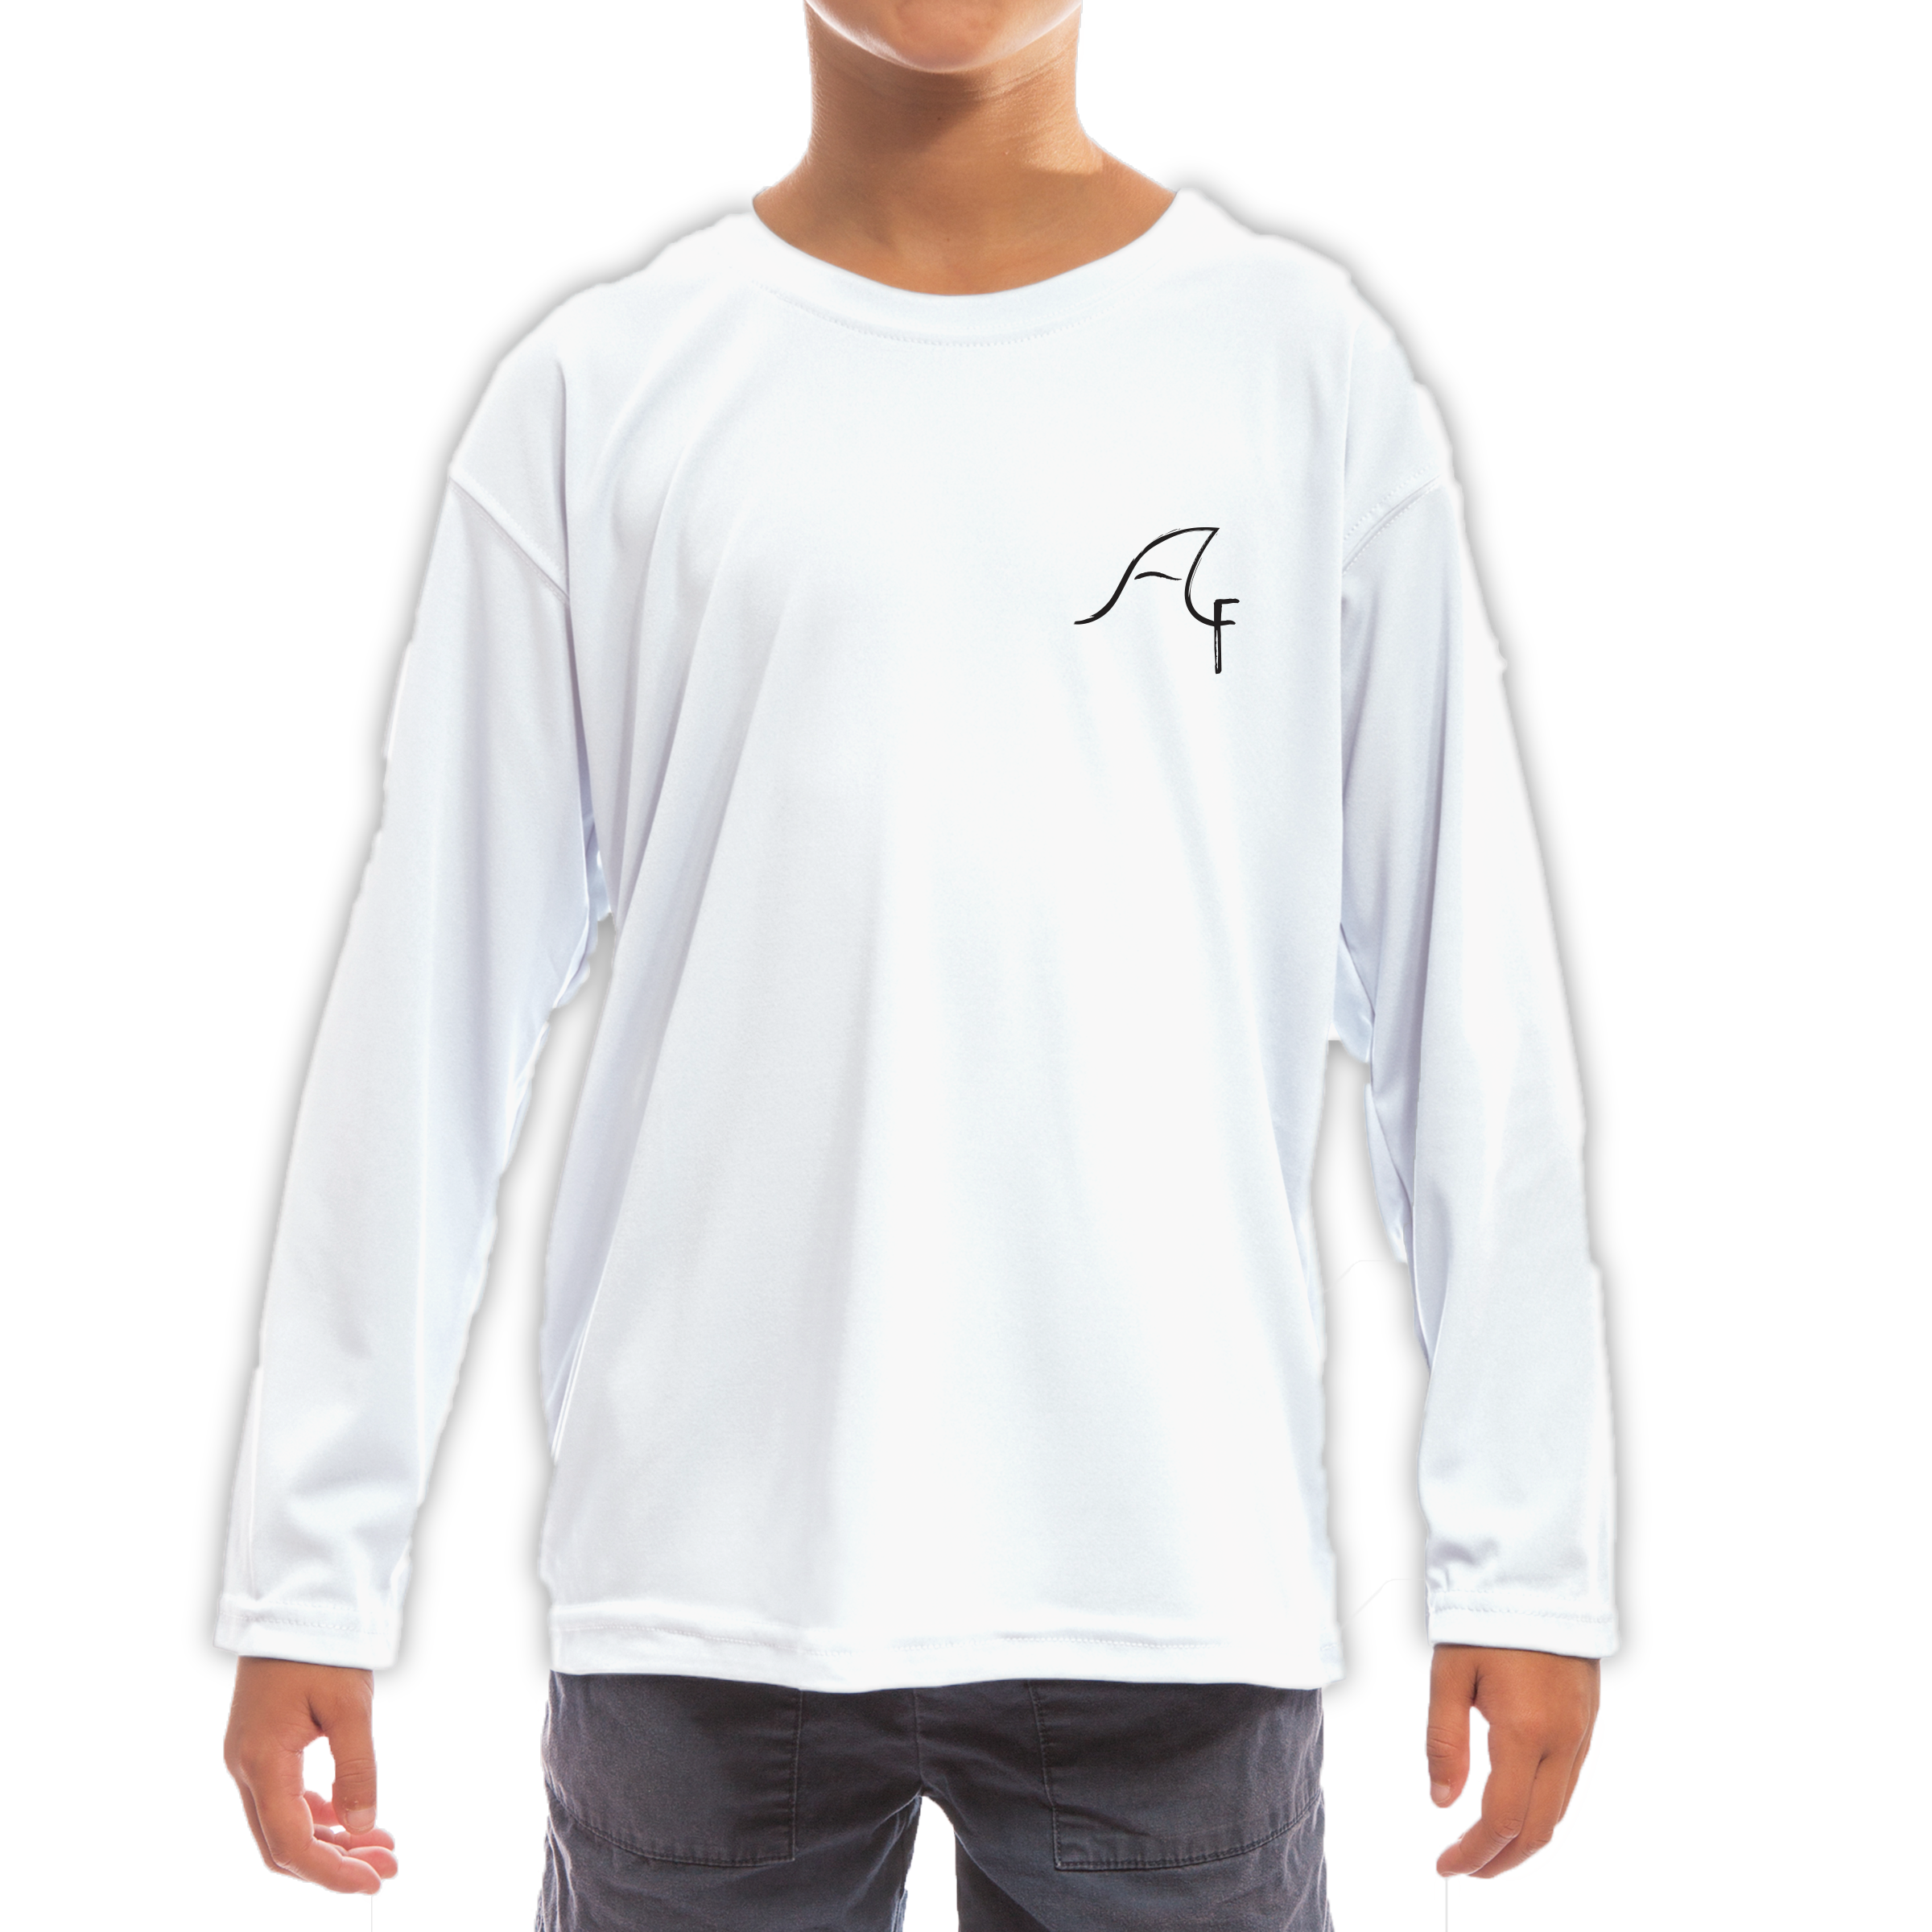 Kids Florida Lures Long Sleeve